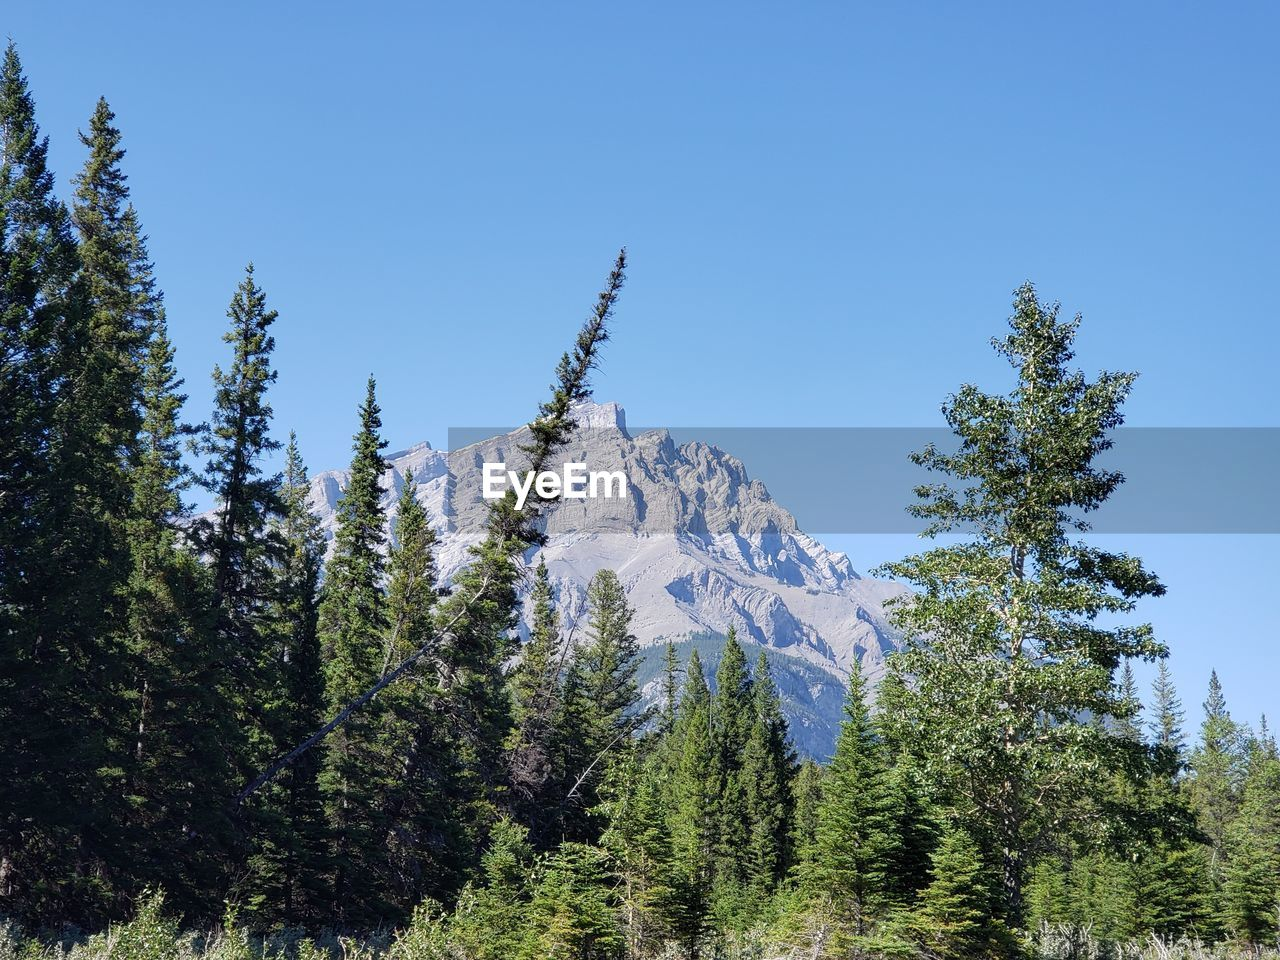 LOW ANGLE VIEW OF PINE TREES ON SNOWCAPPED MOUNTAIN AGAINST SKY